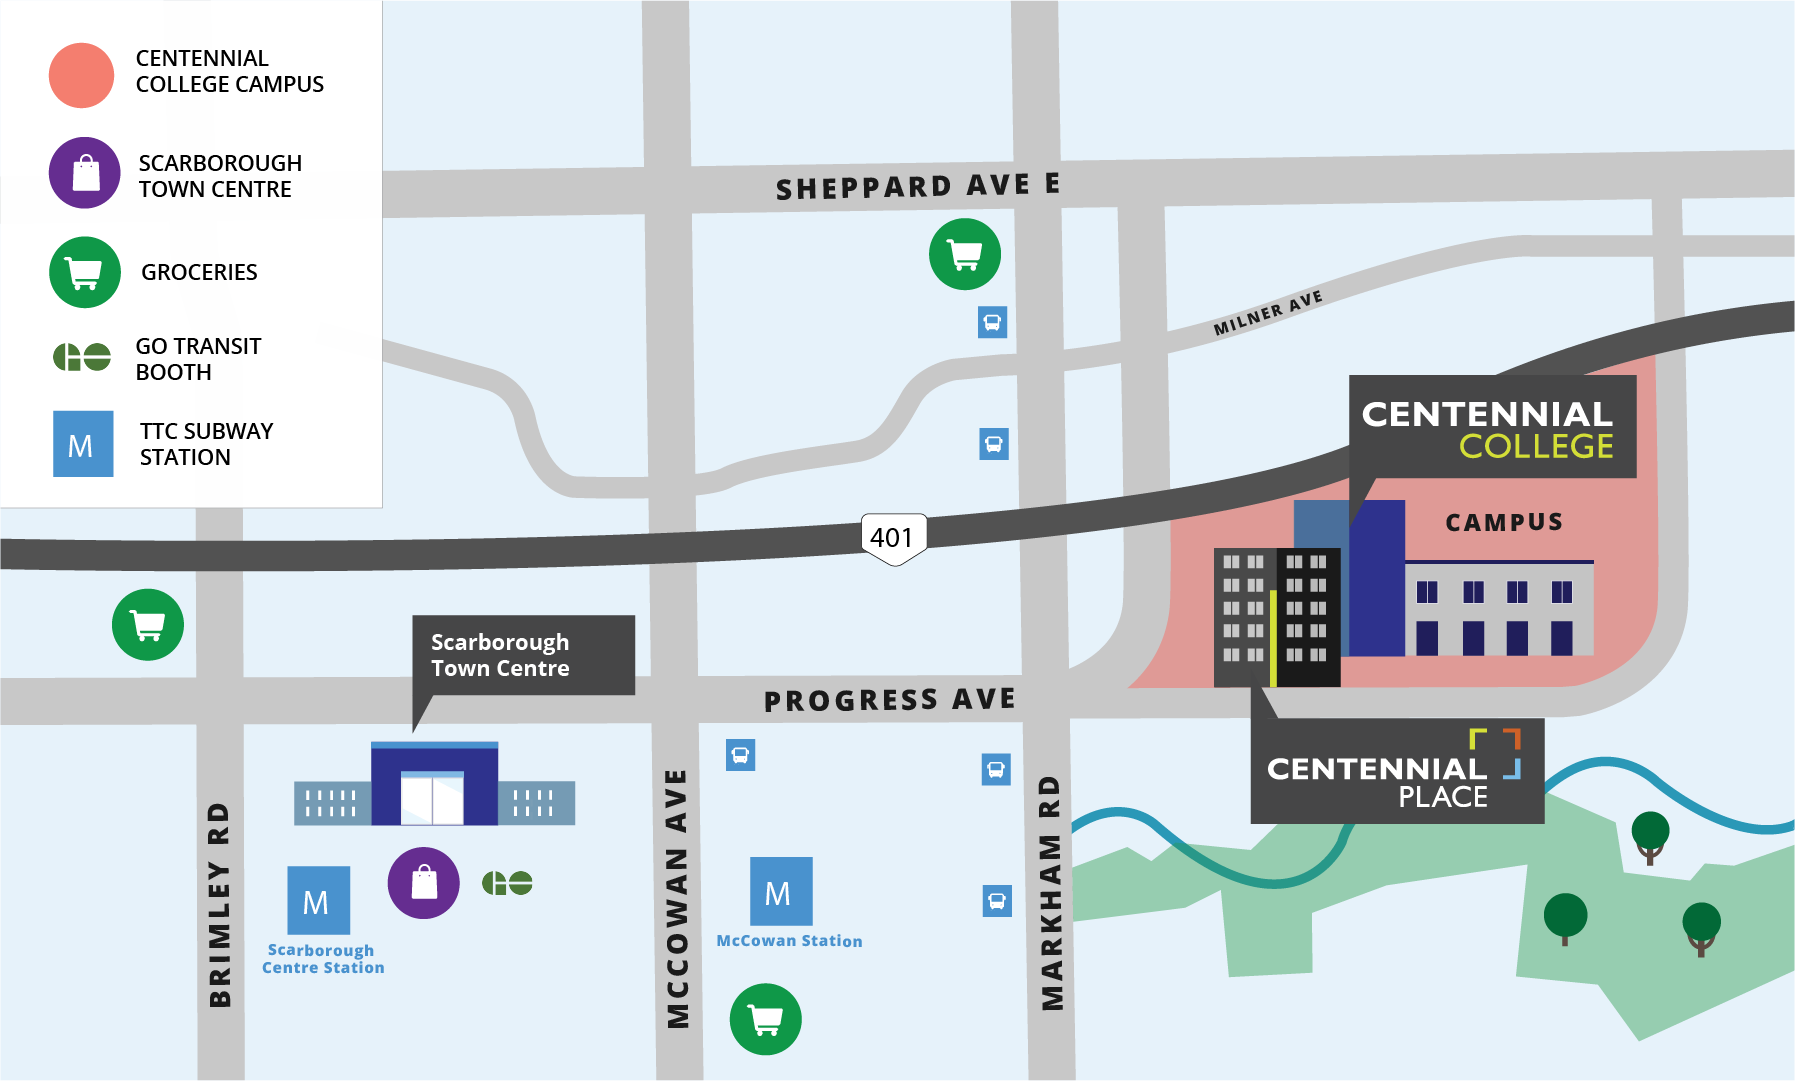 Centennial Place location map. Student living on Centennial College campus in Scarborough.